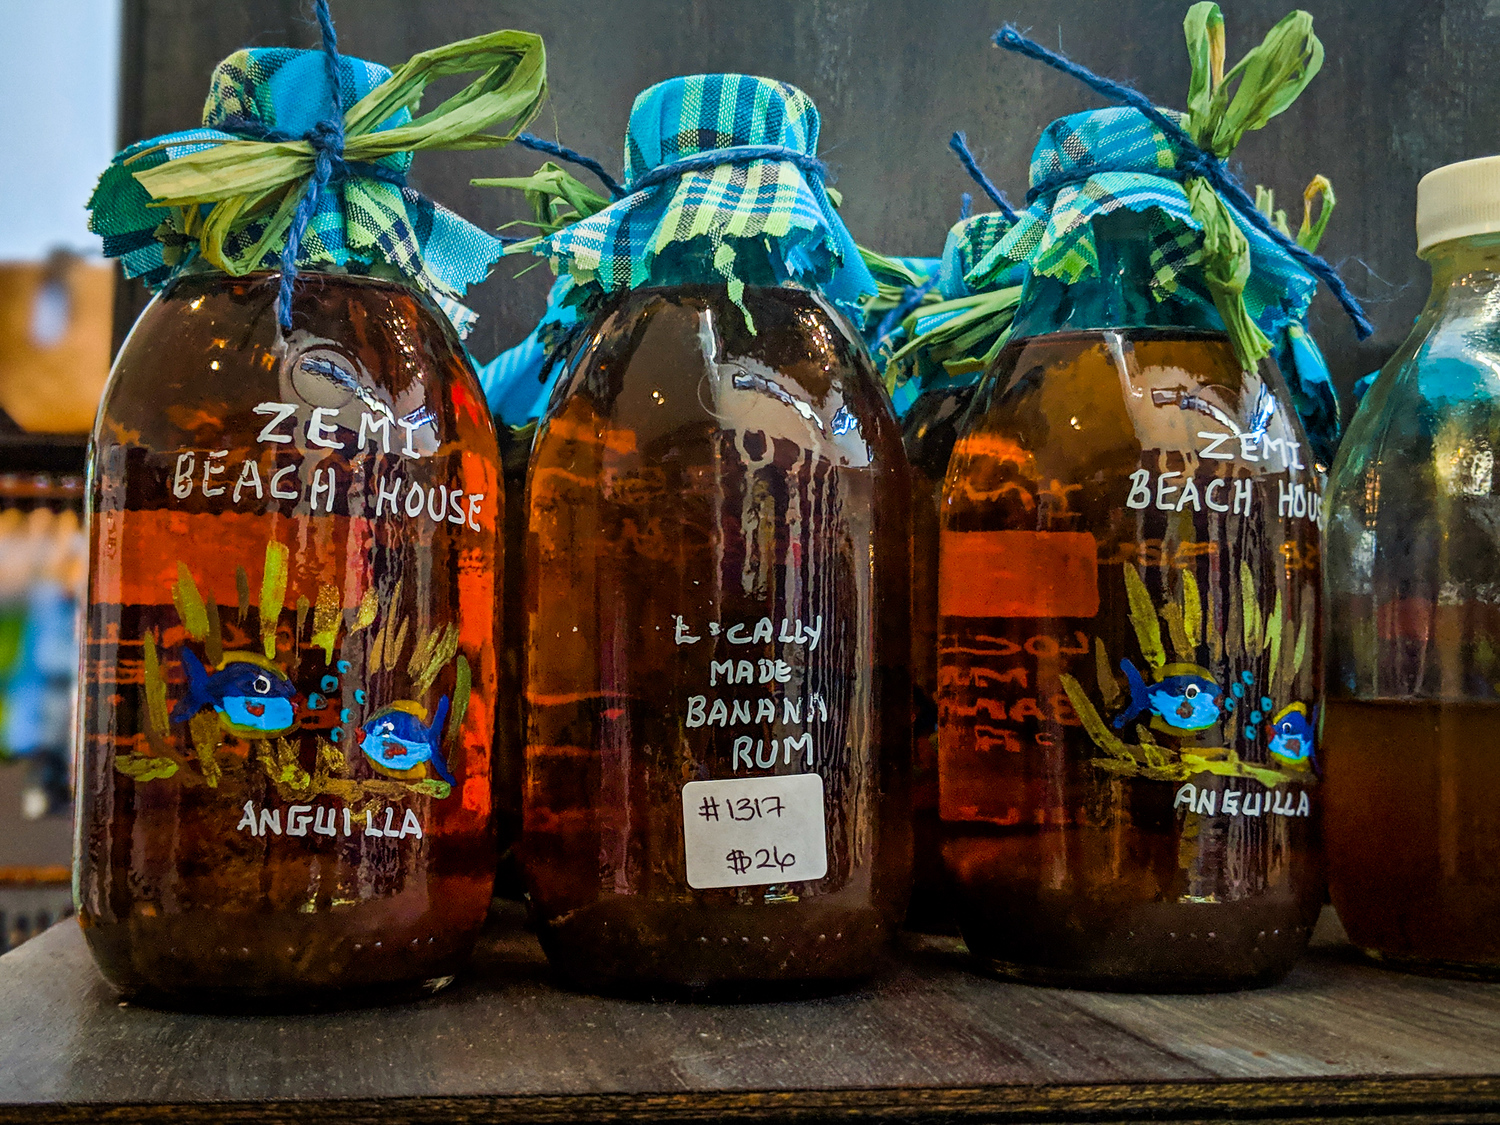 Anguilla food souvenirs include banana rum from hotel gift shops.